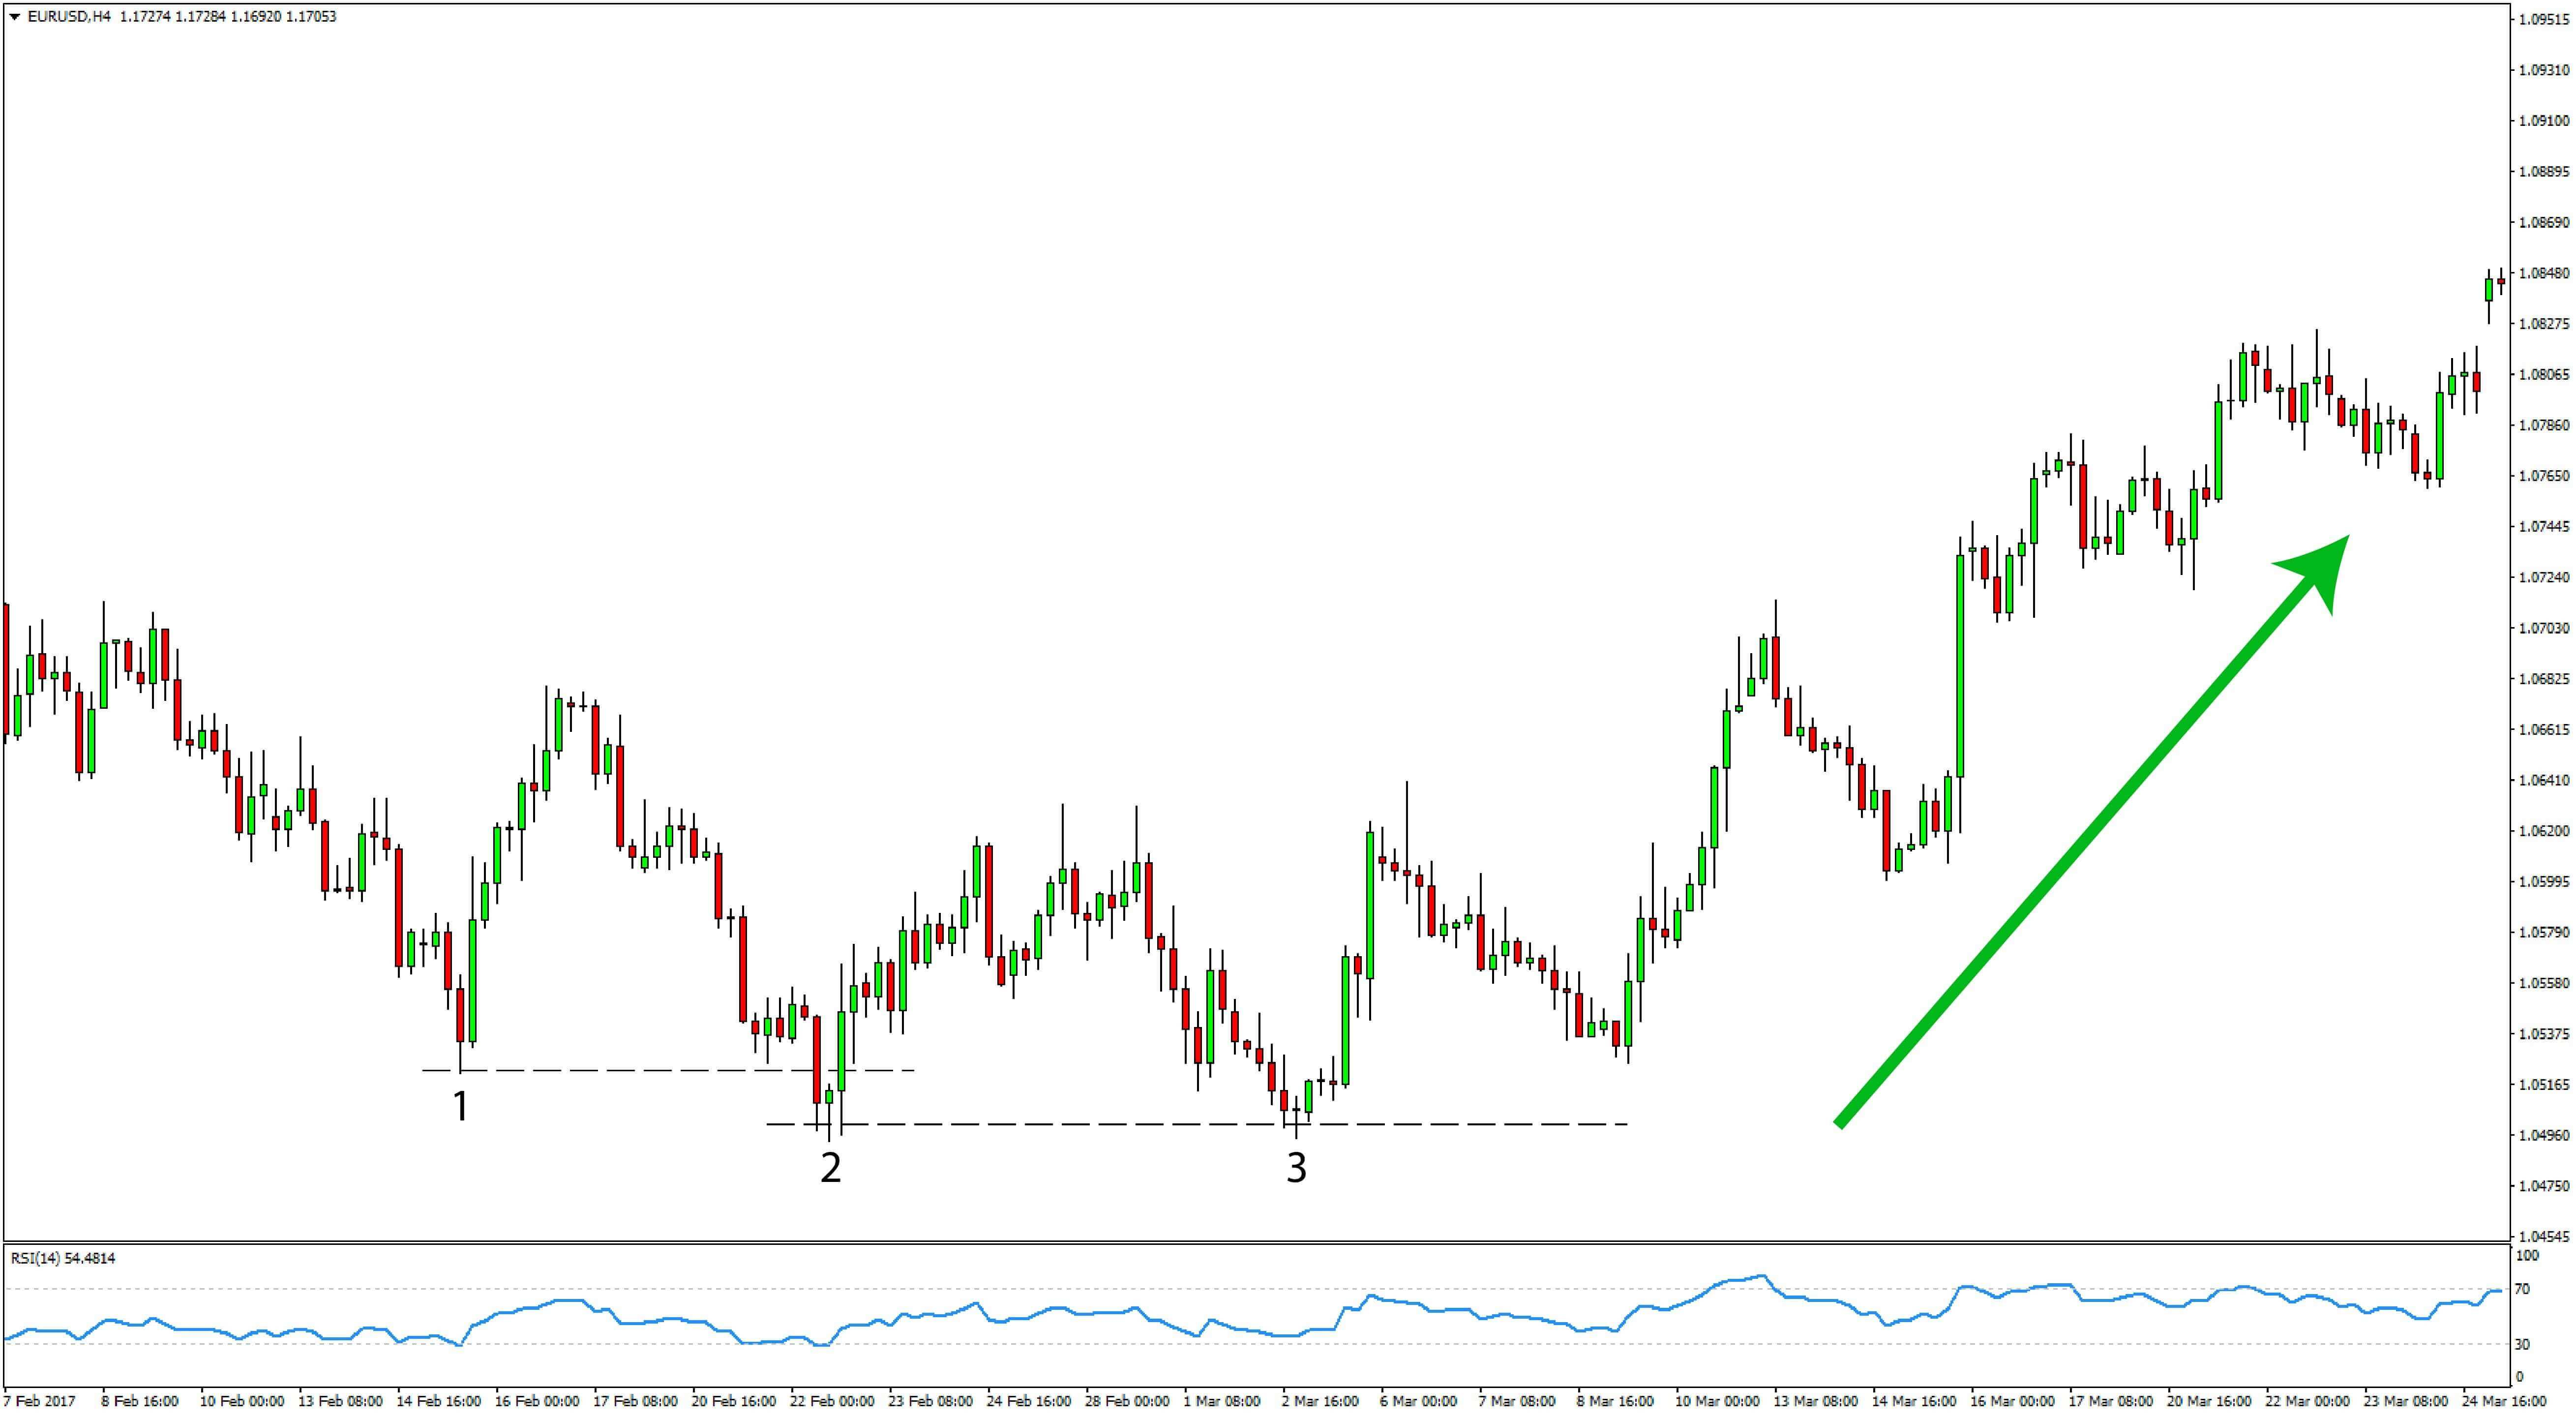 EURUSD Price Action Forex Trading Strategy preview